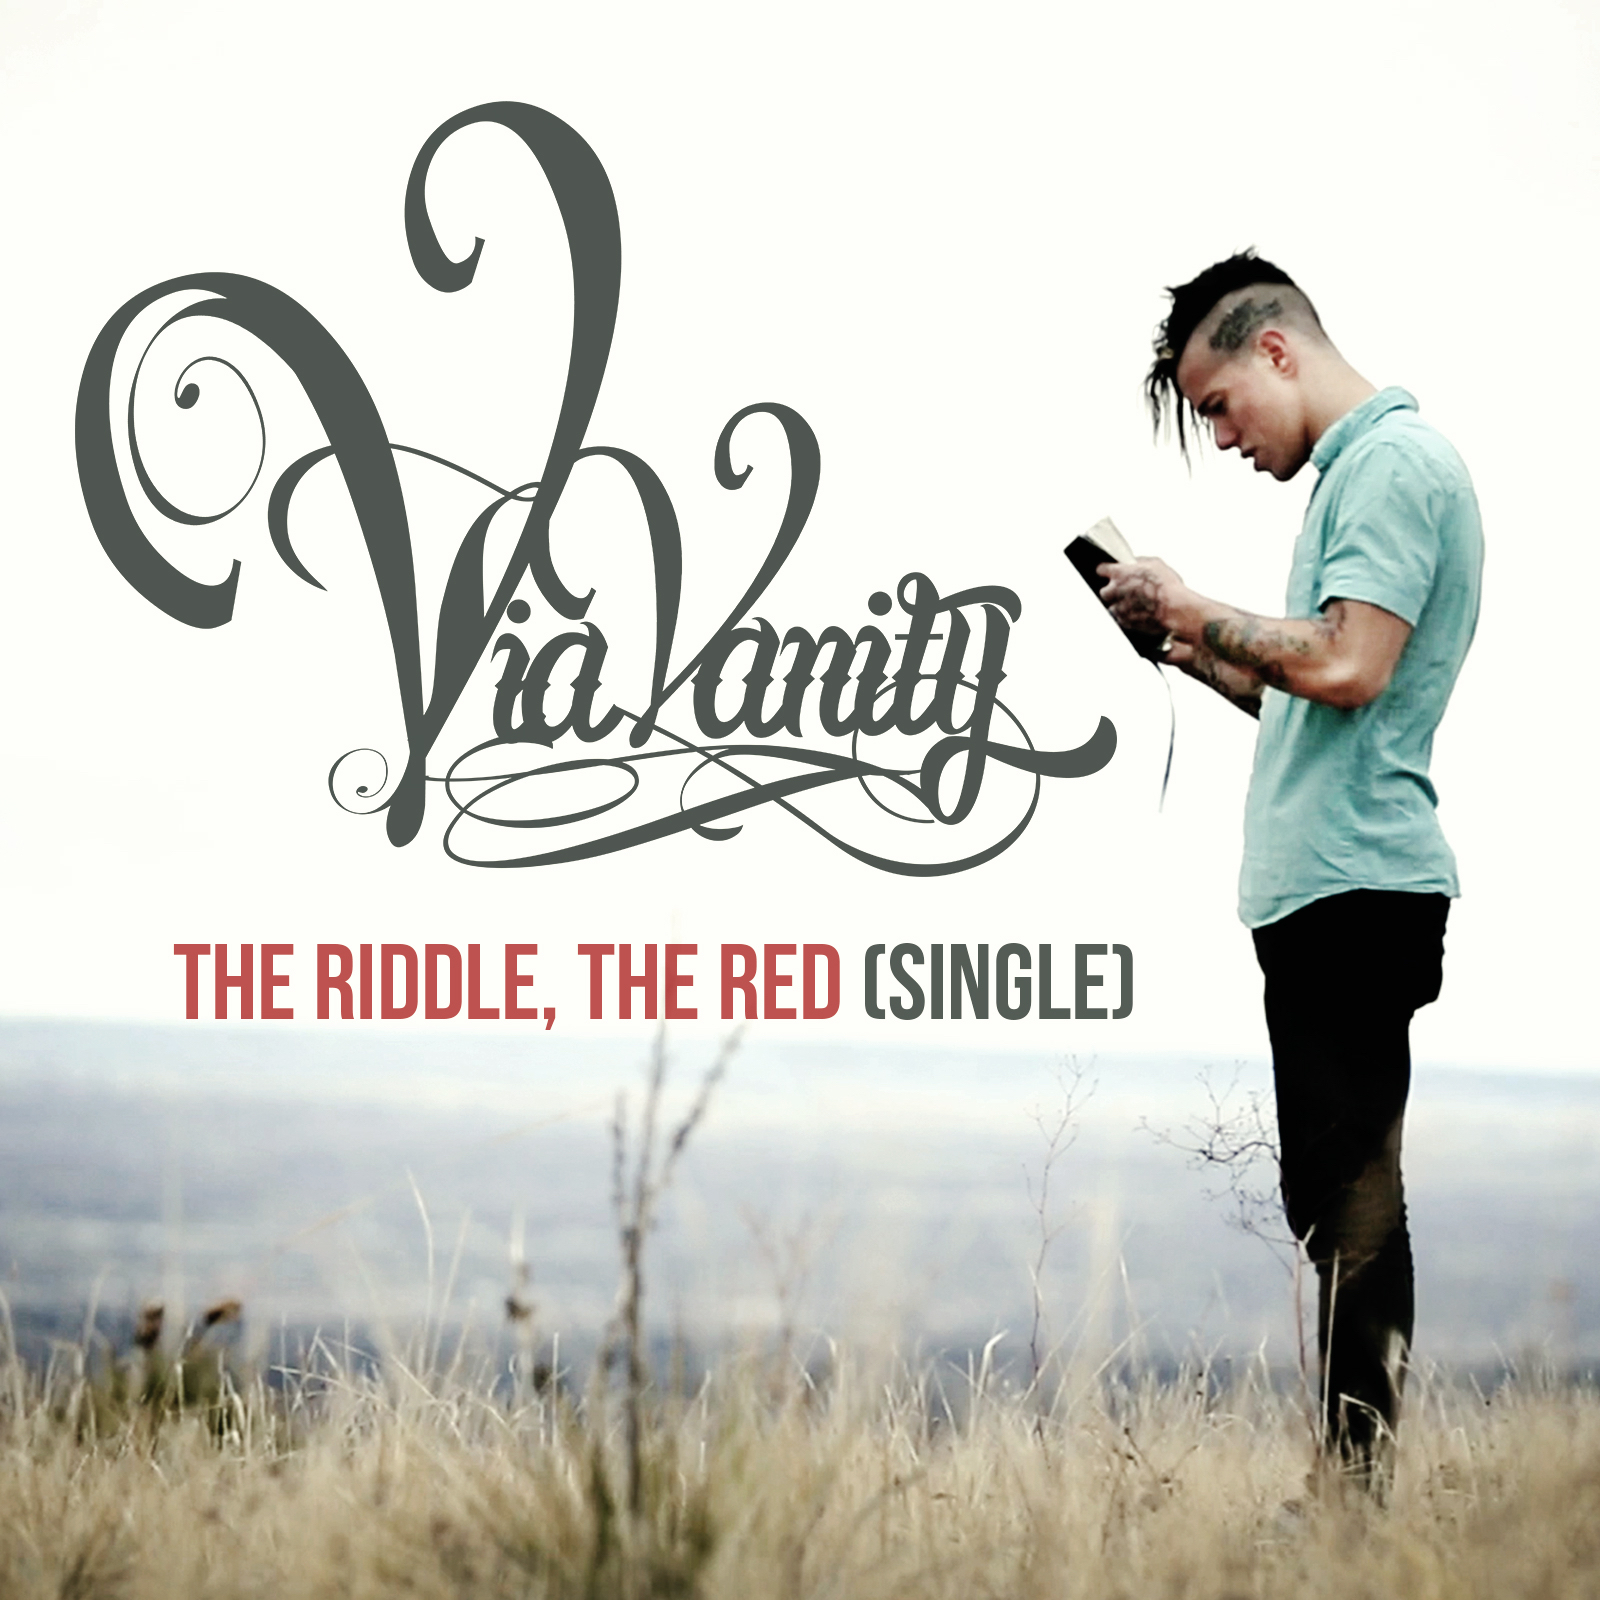 Via Vanity - The Riddle, the Red [single] (2014)